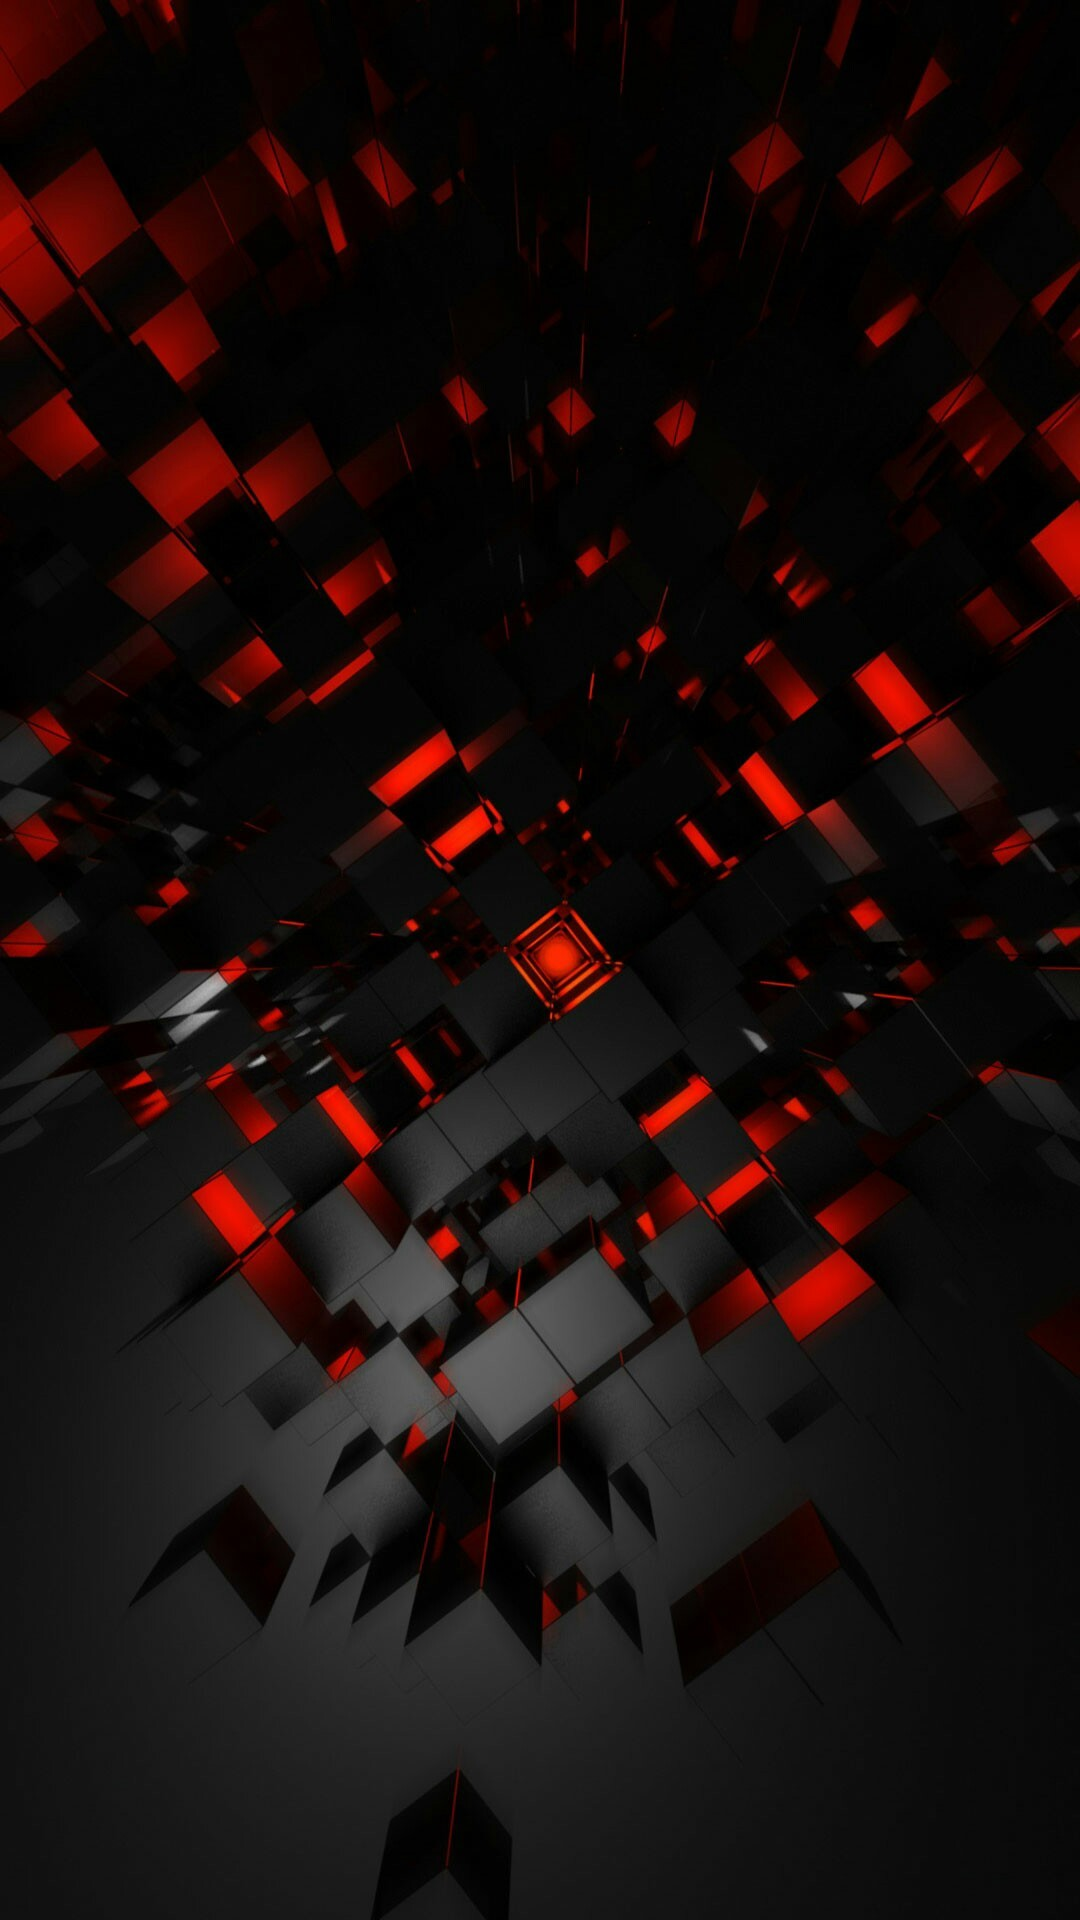 Abstract backgrounds red and black